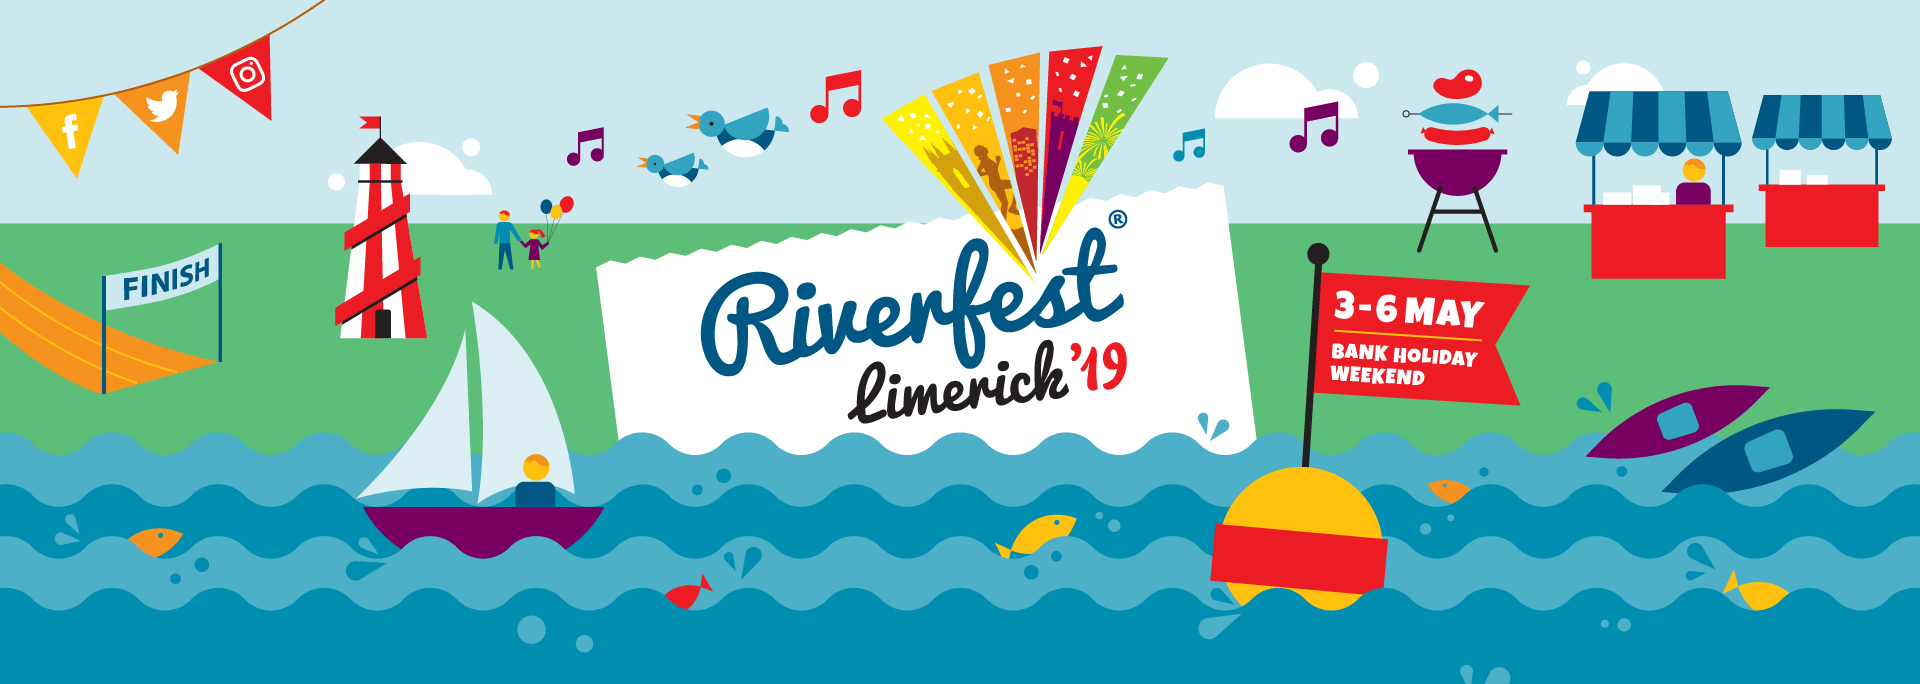 Riverfest Limerick Brand Illustrations Piquant Media Feature Image